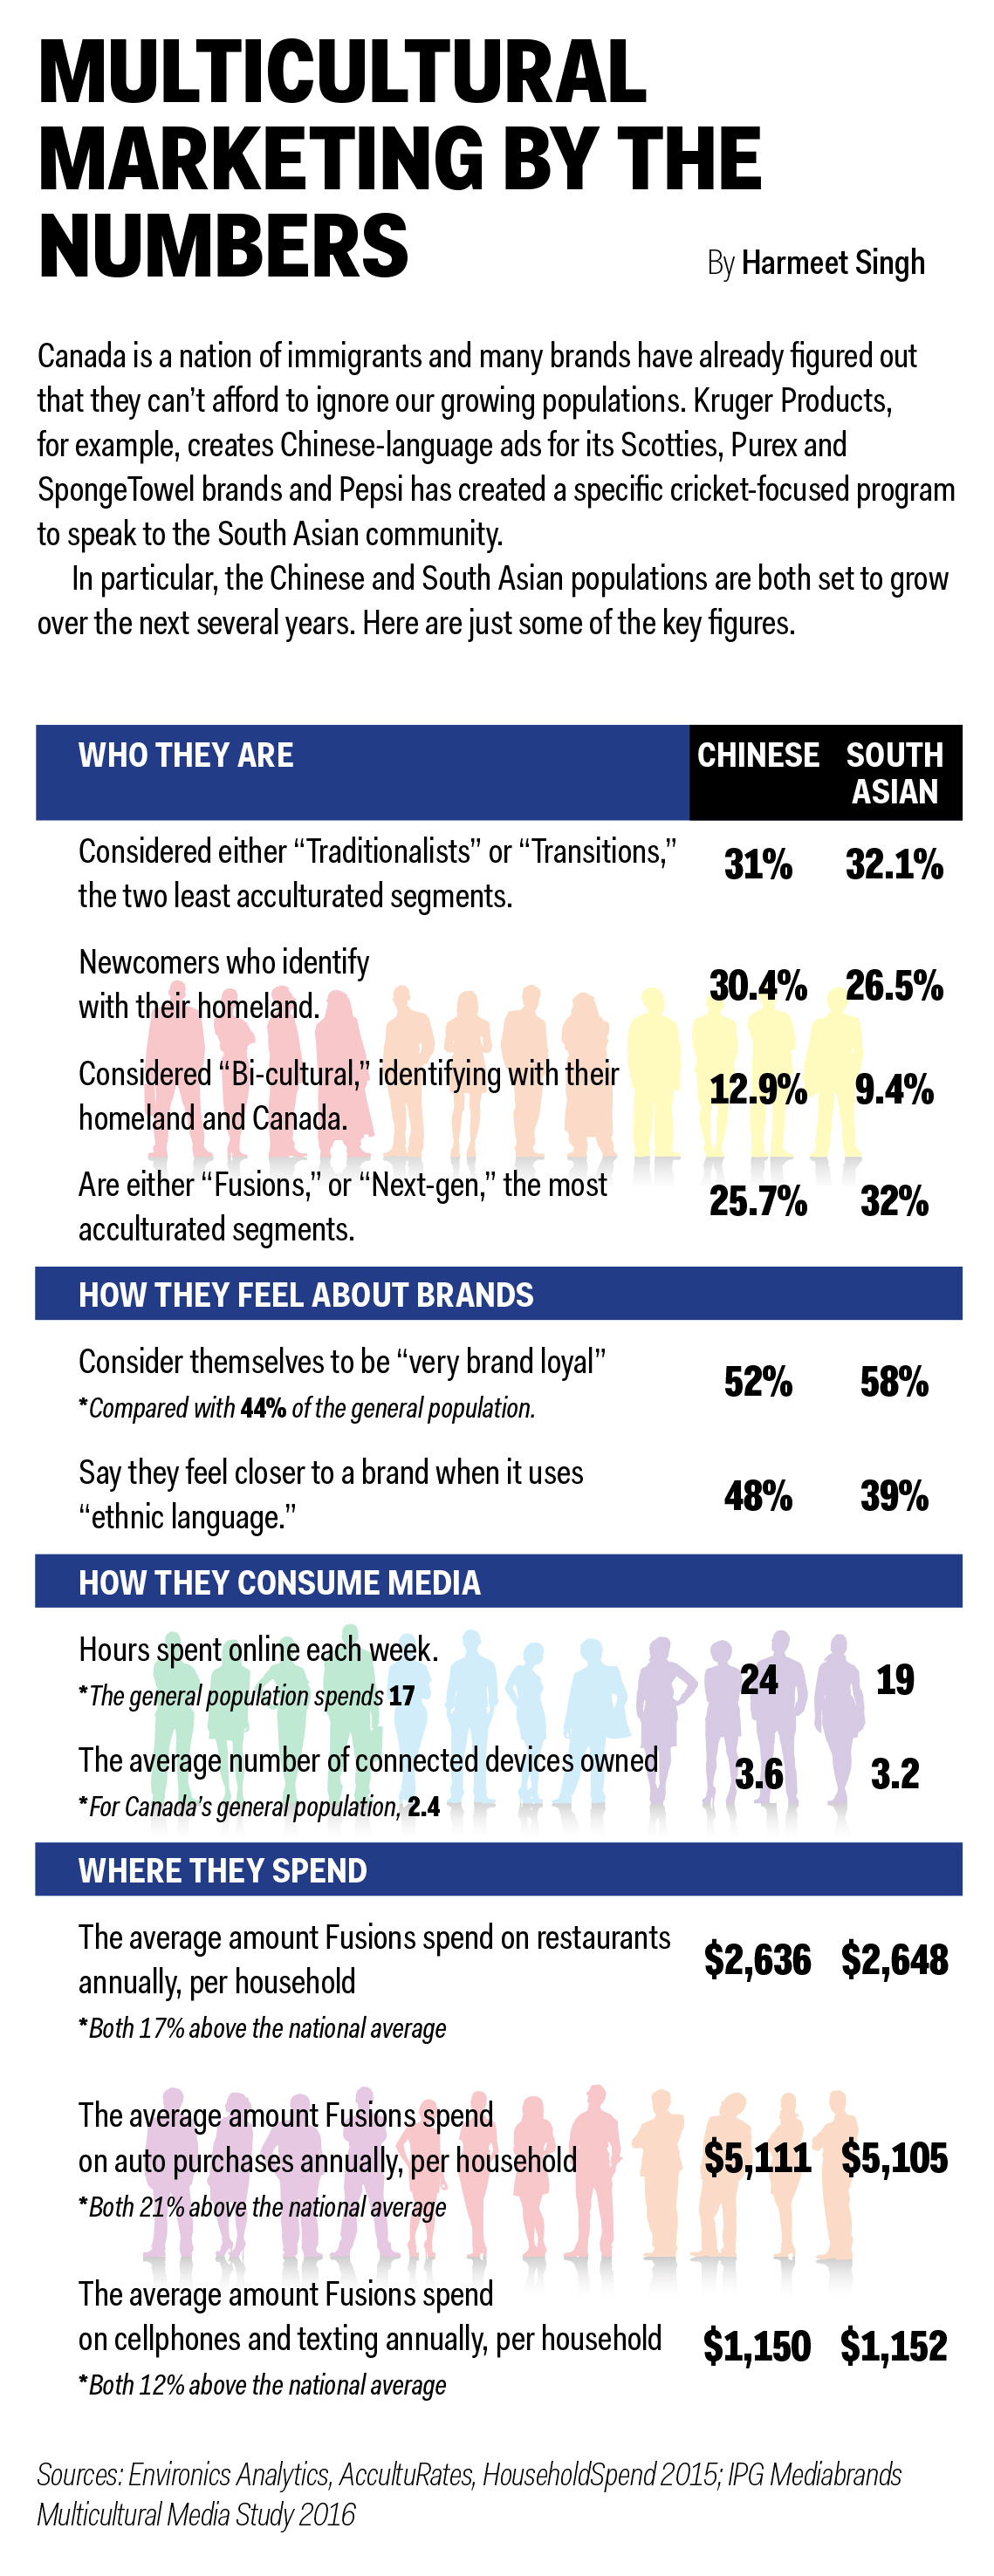 infographic, niche audiences, marketing, multicultural marketing, asian canadians, chinese canadians, canadian marketing, canadian audiences, canadian marketing